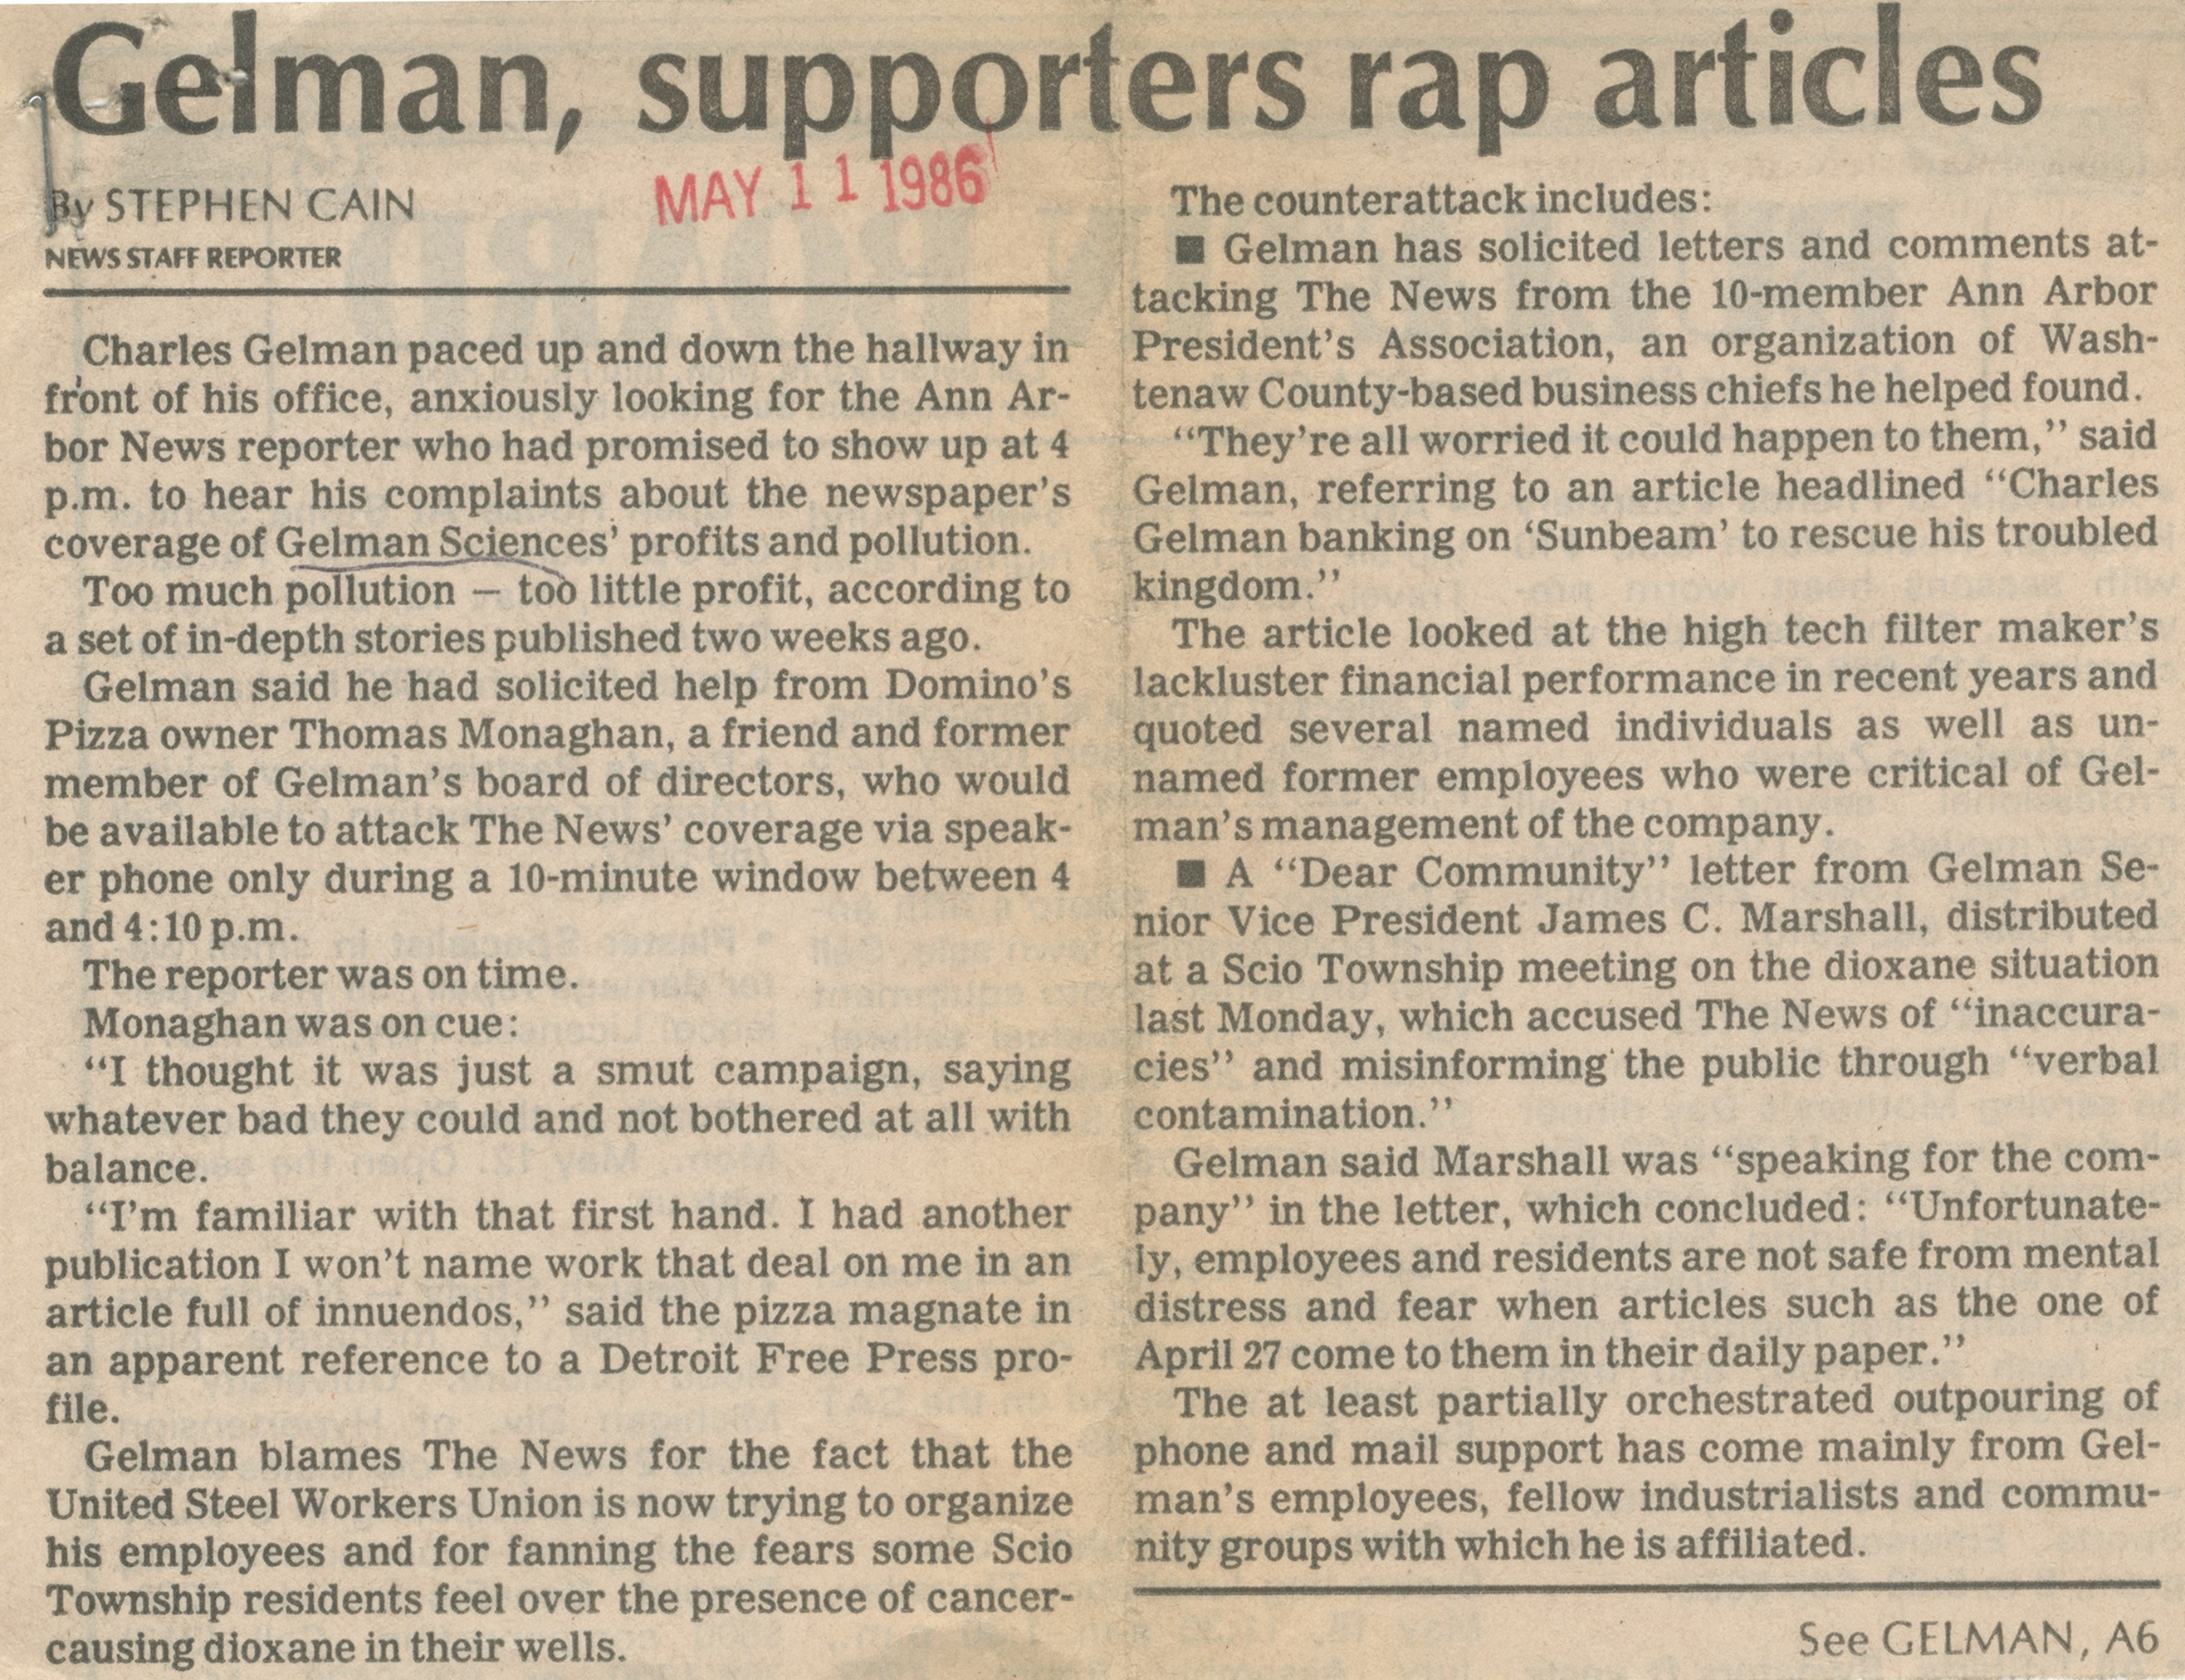 Gelman, Supporters Rap Articles image